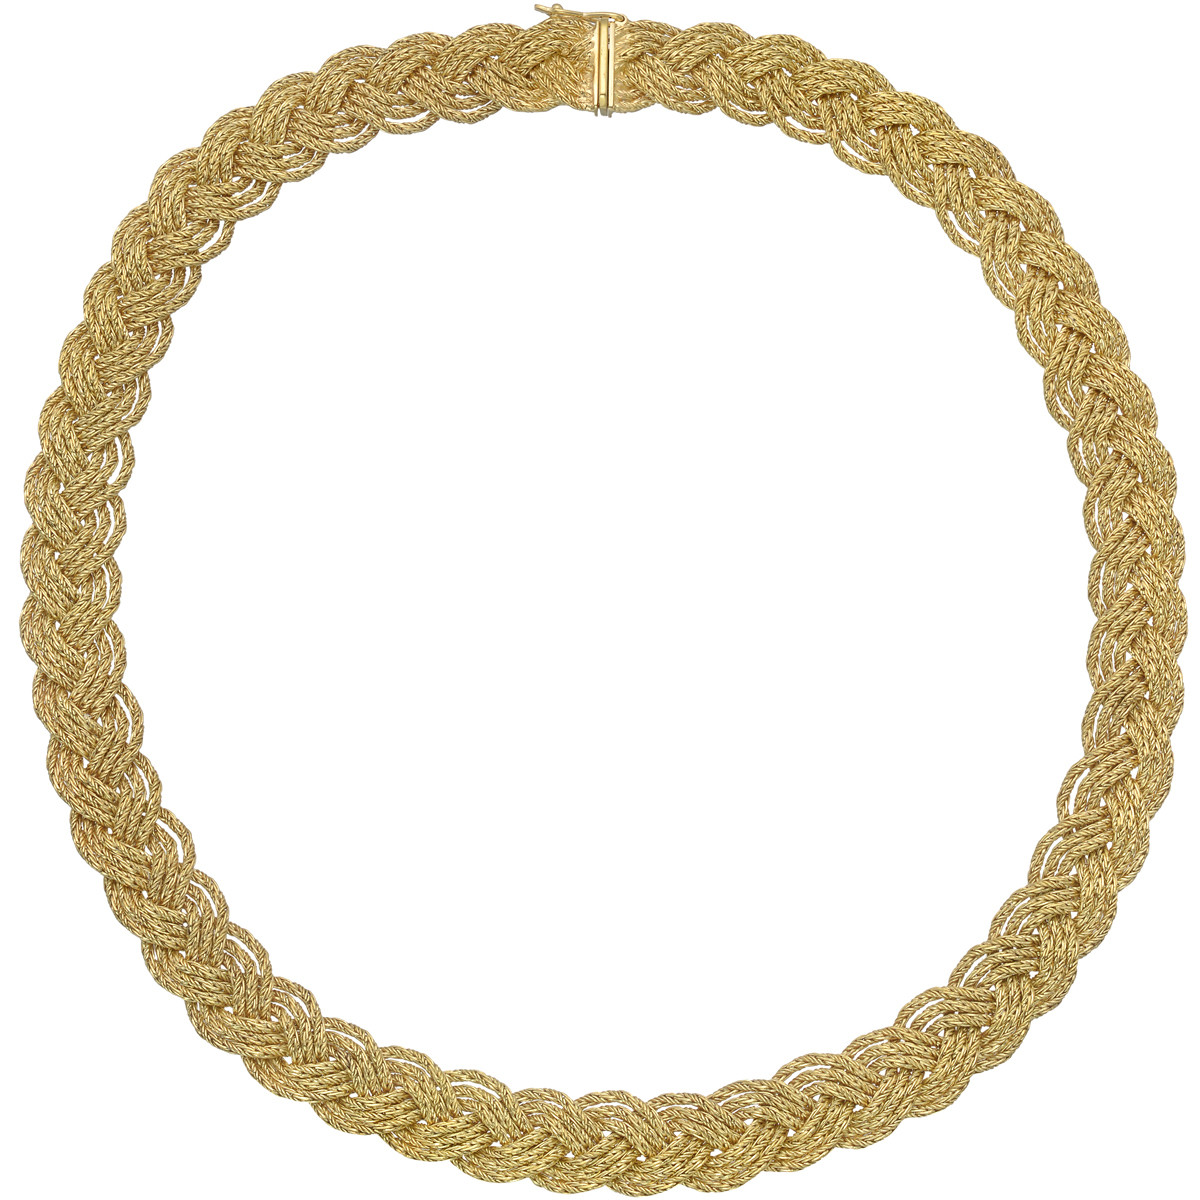 Braided 18k Yellow Gold Collar Necklace